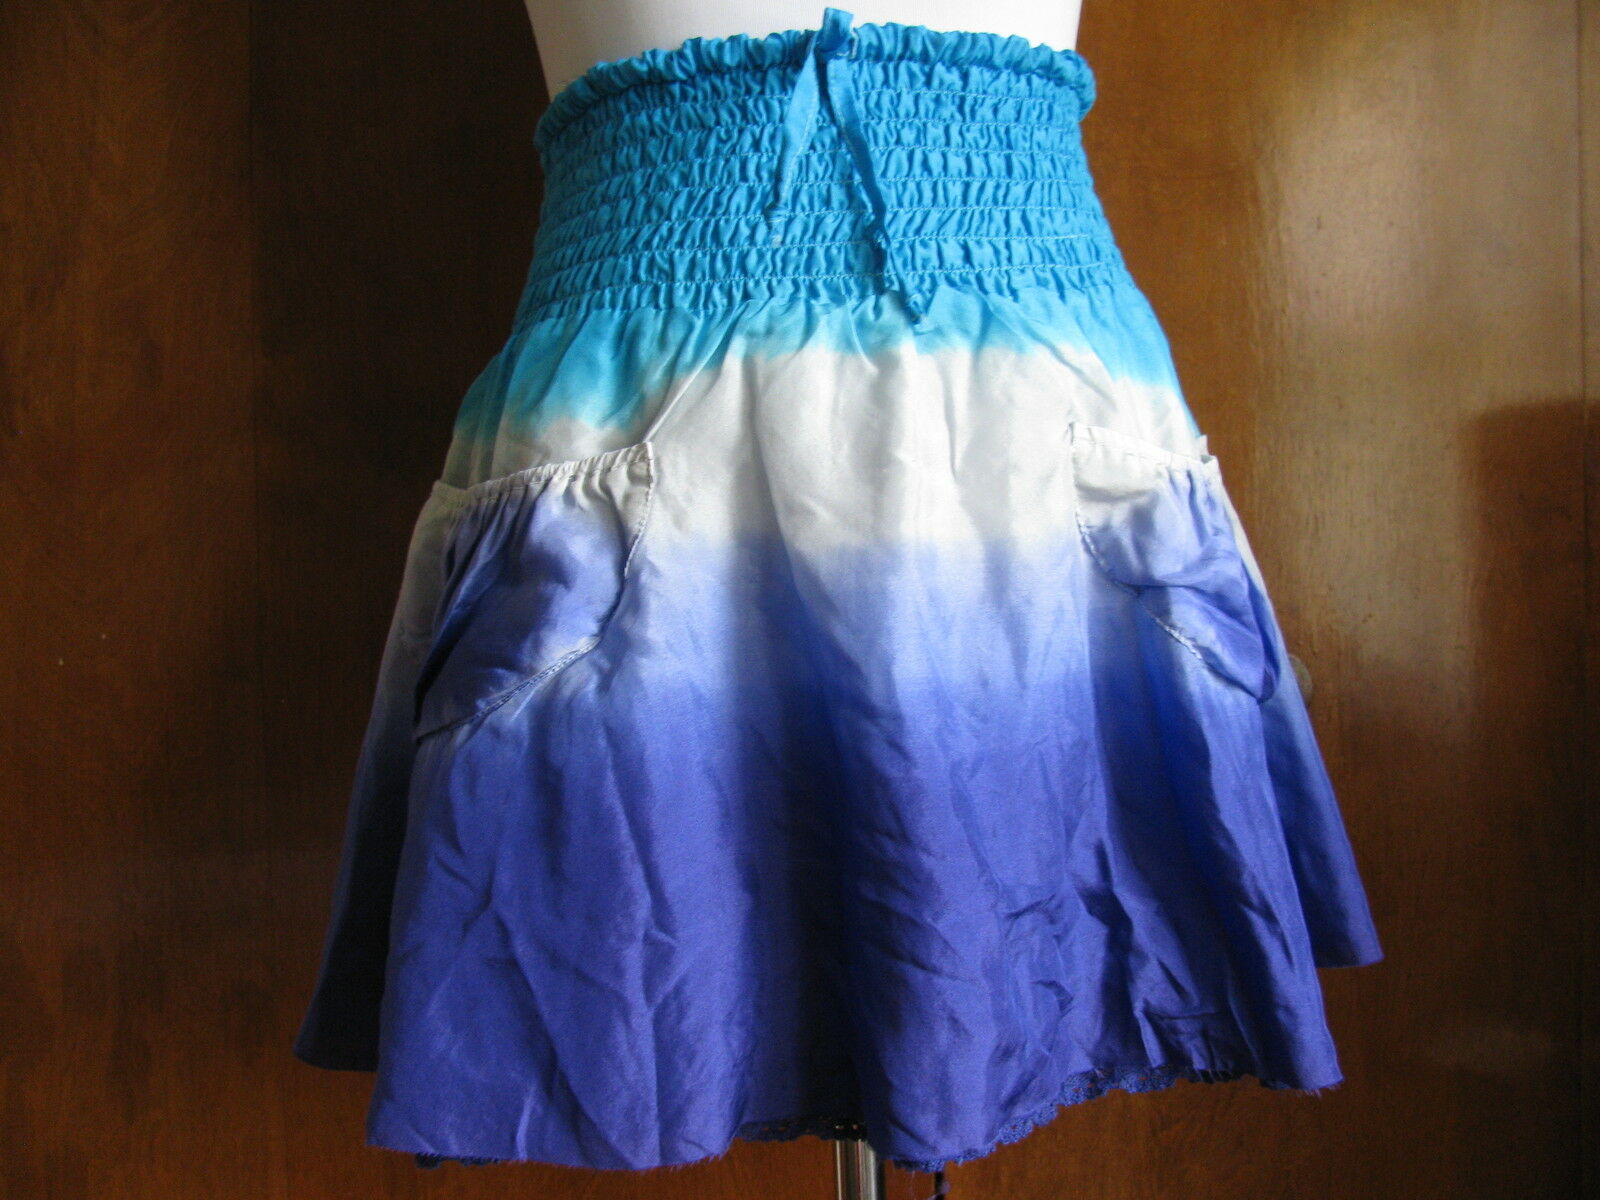 NWT Women's Buffalo Silk Lined Mini Skirt Size Medium